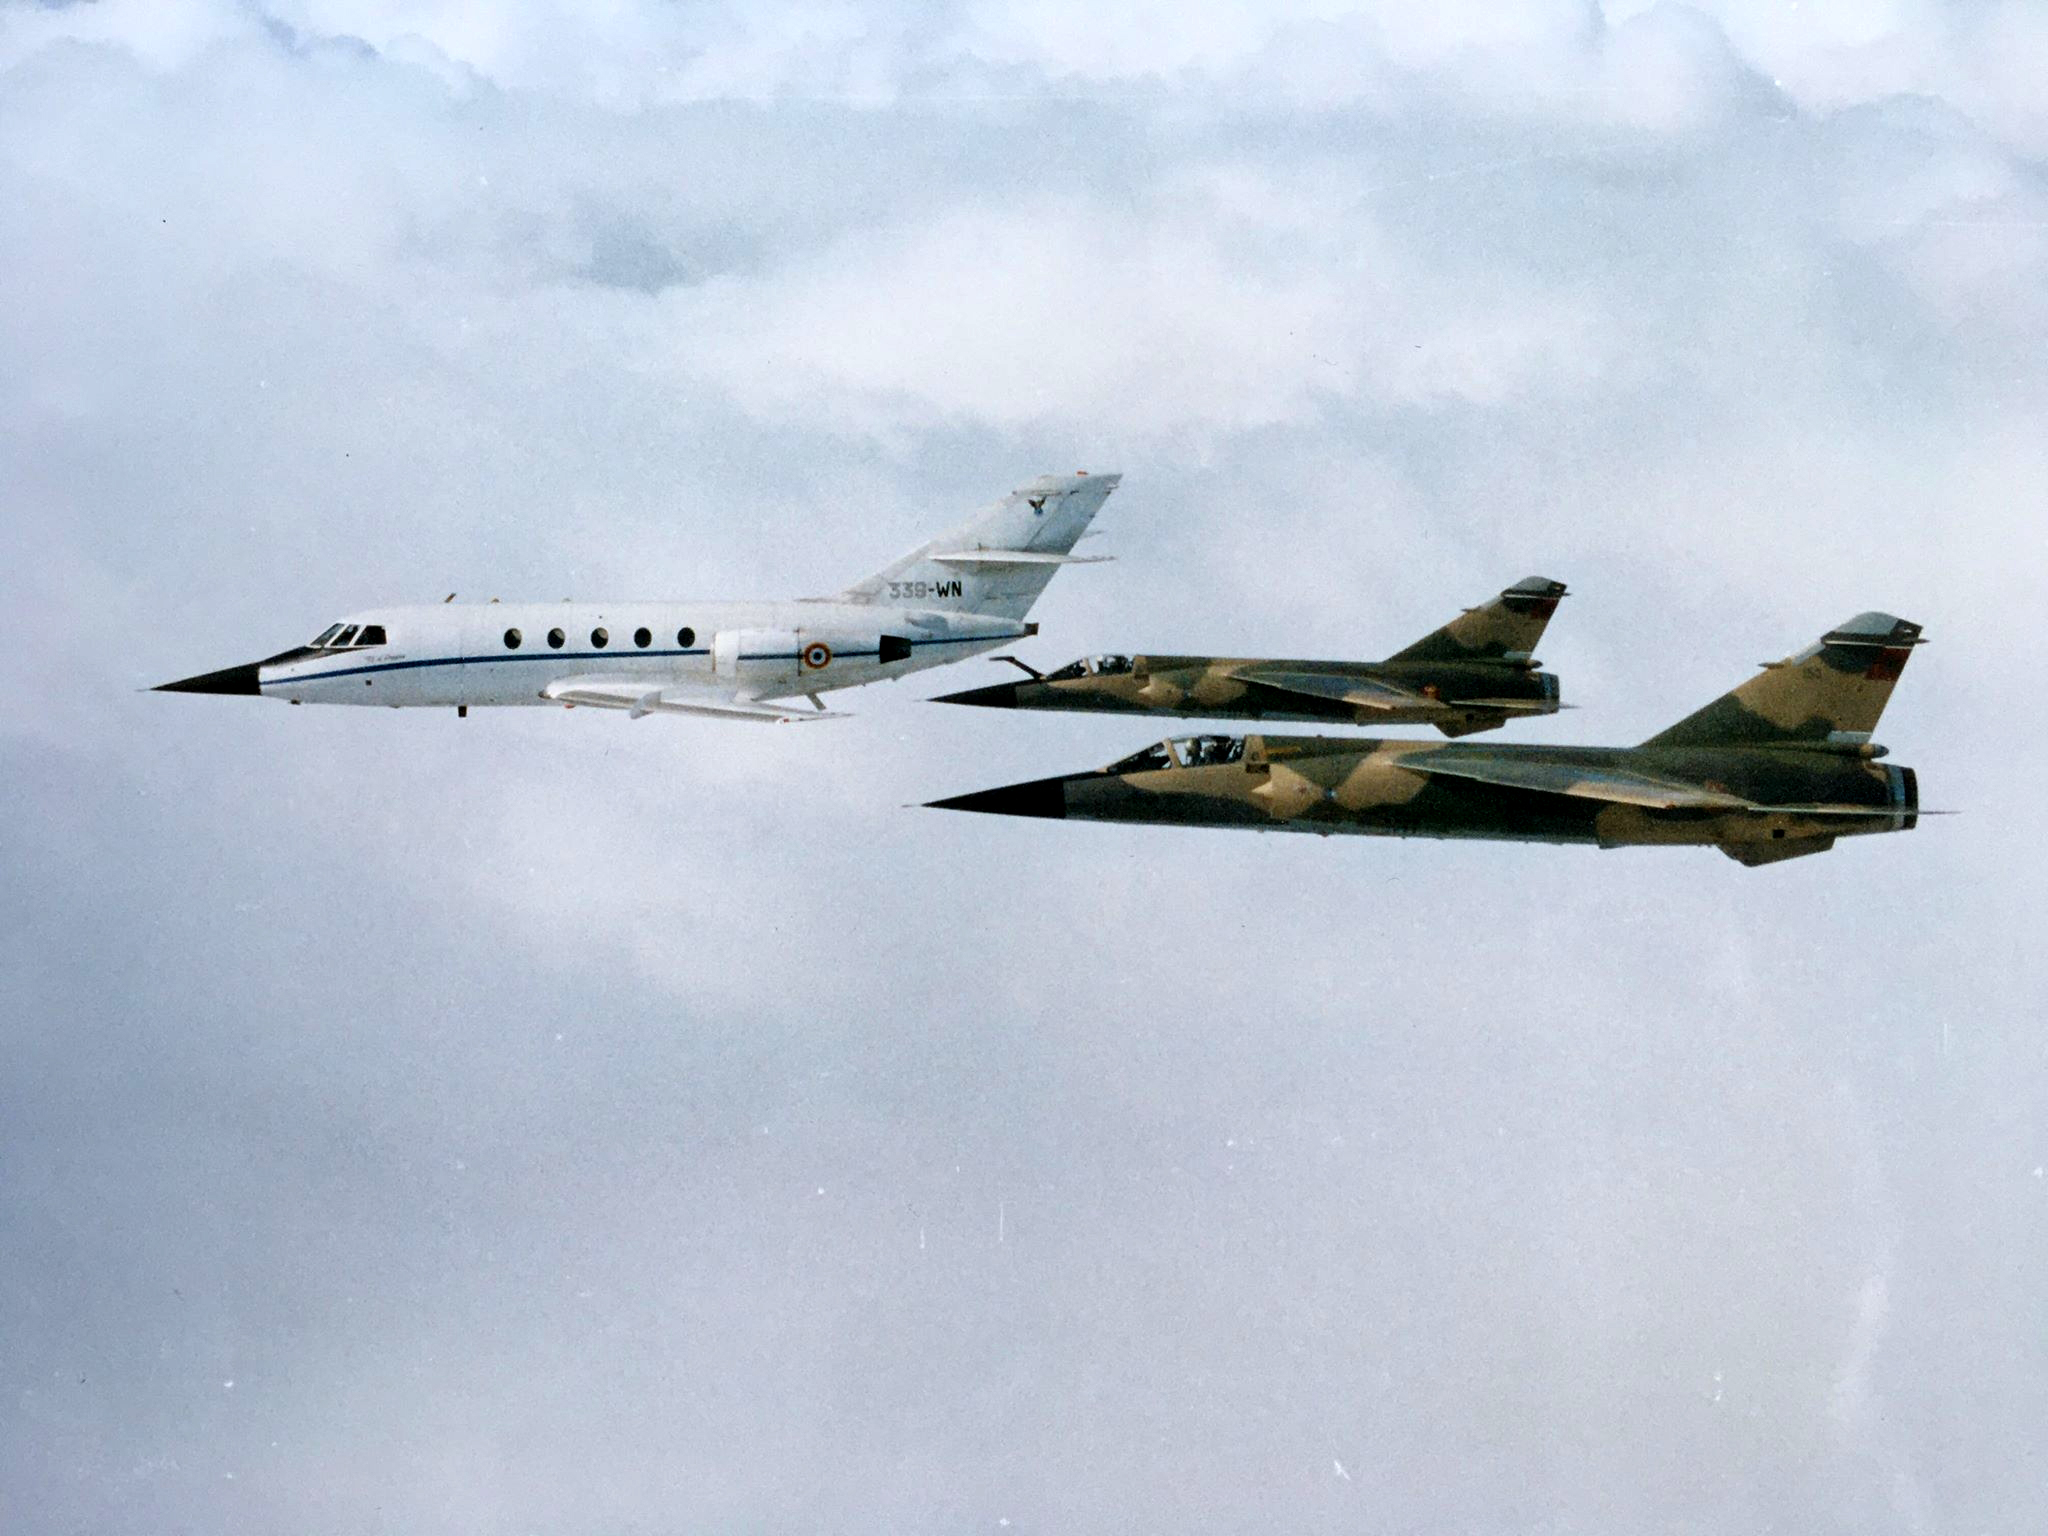 FRA: Photos Mirage F1 - Page 16 50165497147_692be777a2_o_d